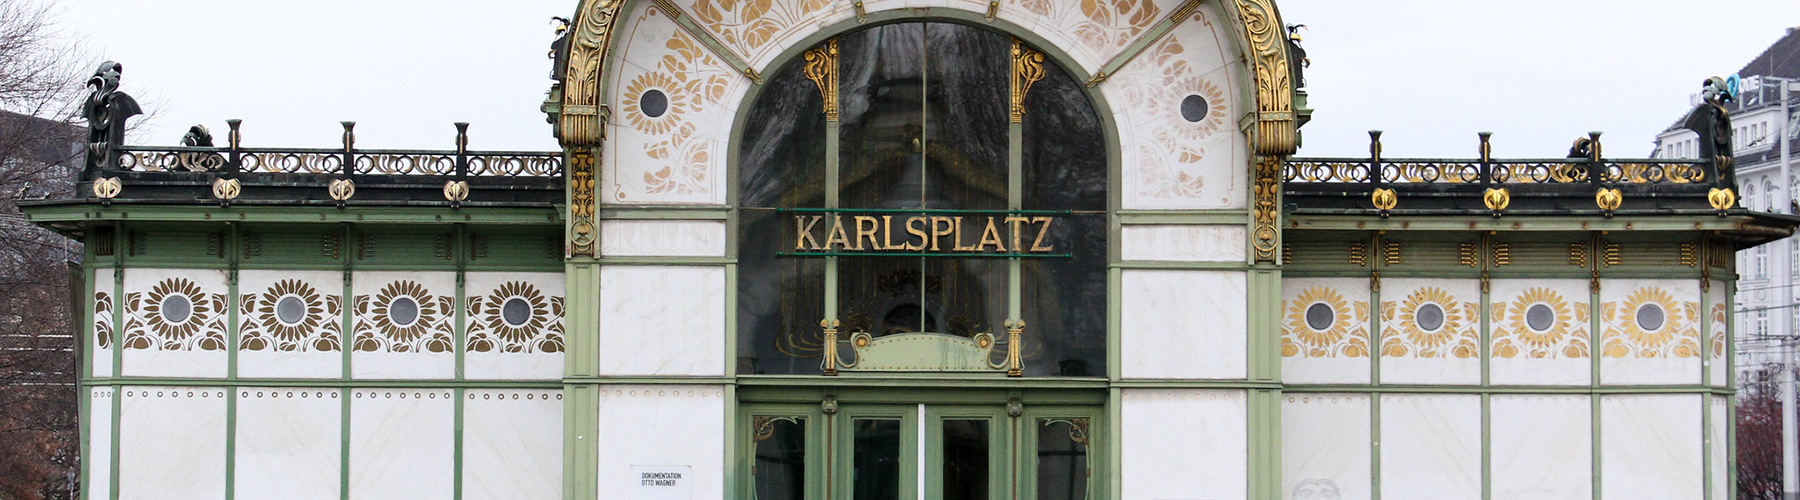 Vienna – Hotels close to Karlsplatz Stadtbahn Station. Maps of Vienna, Photos and Reviews for each Hotel in Vienna.